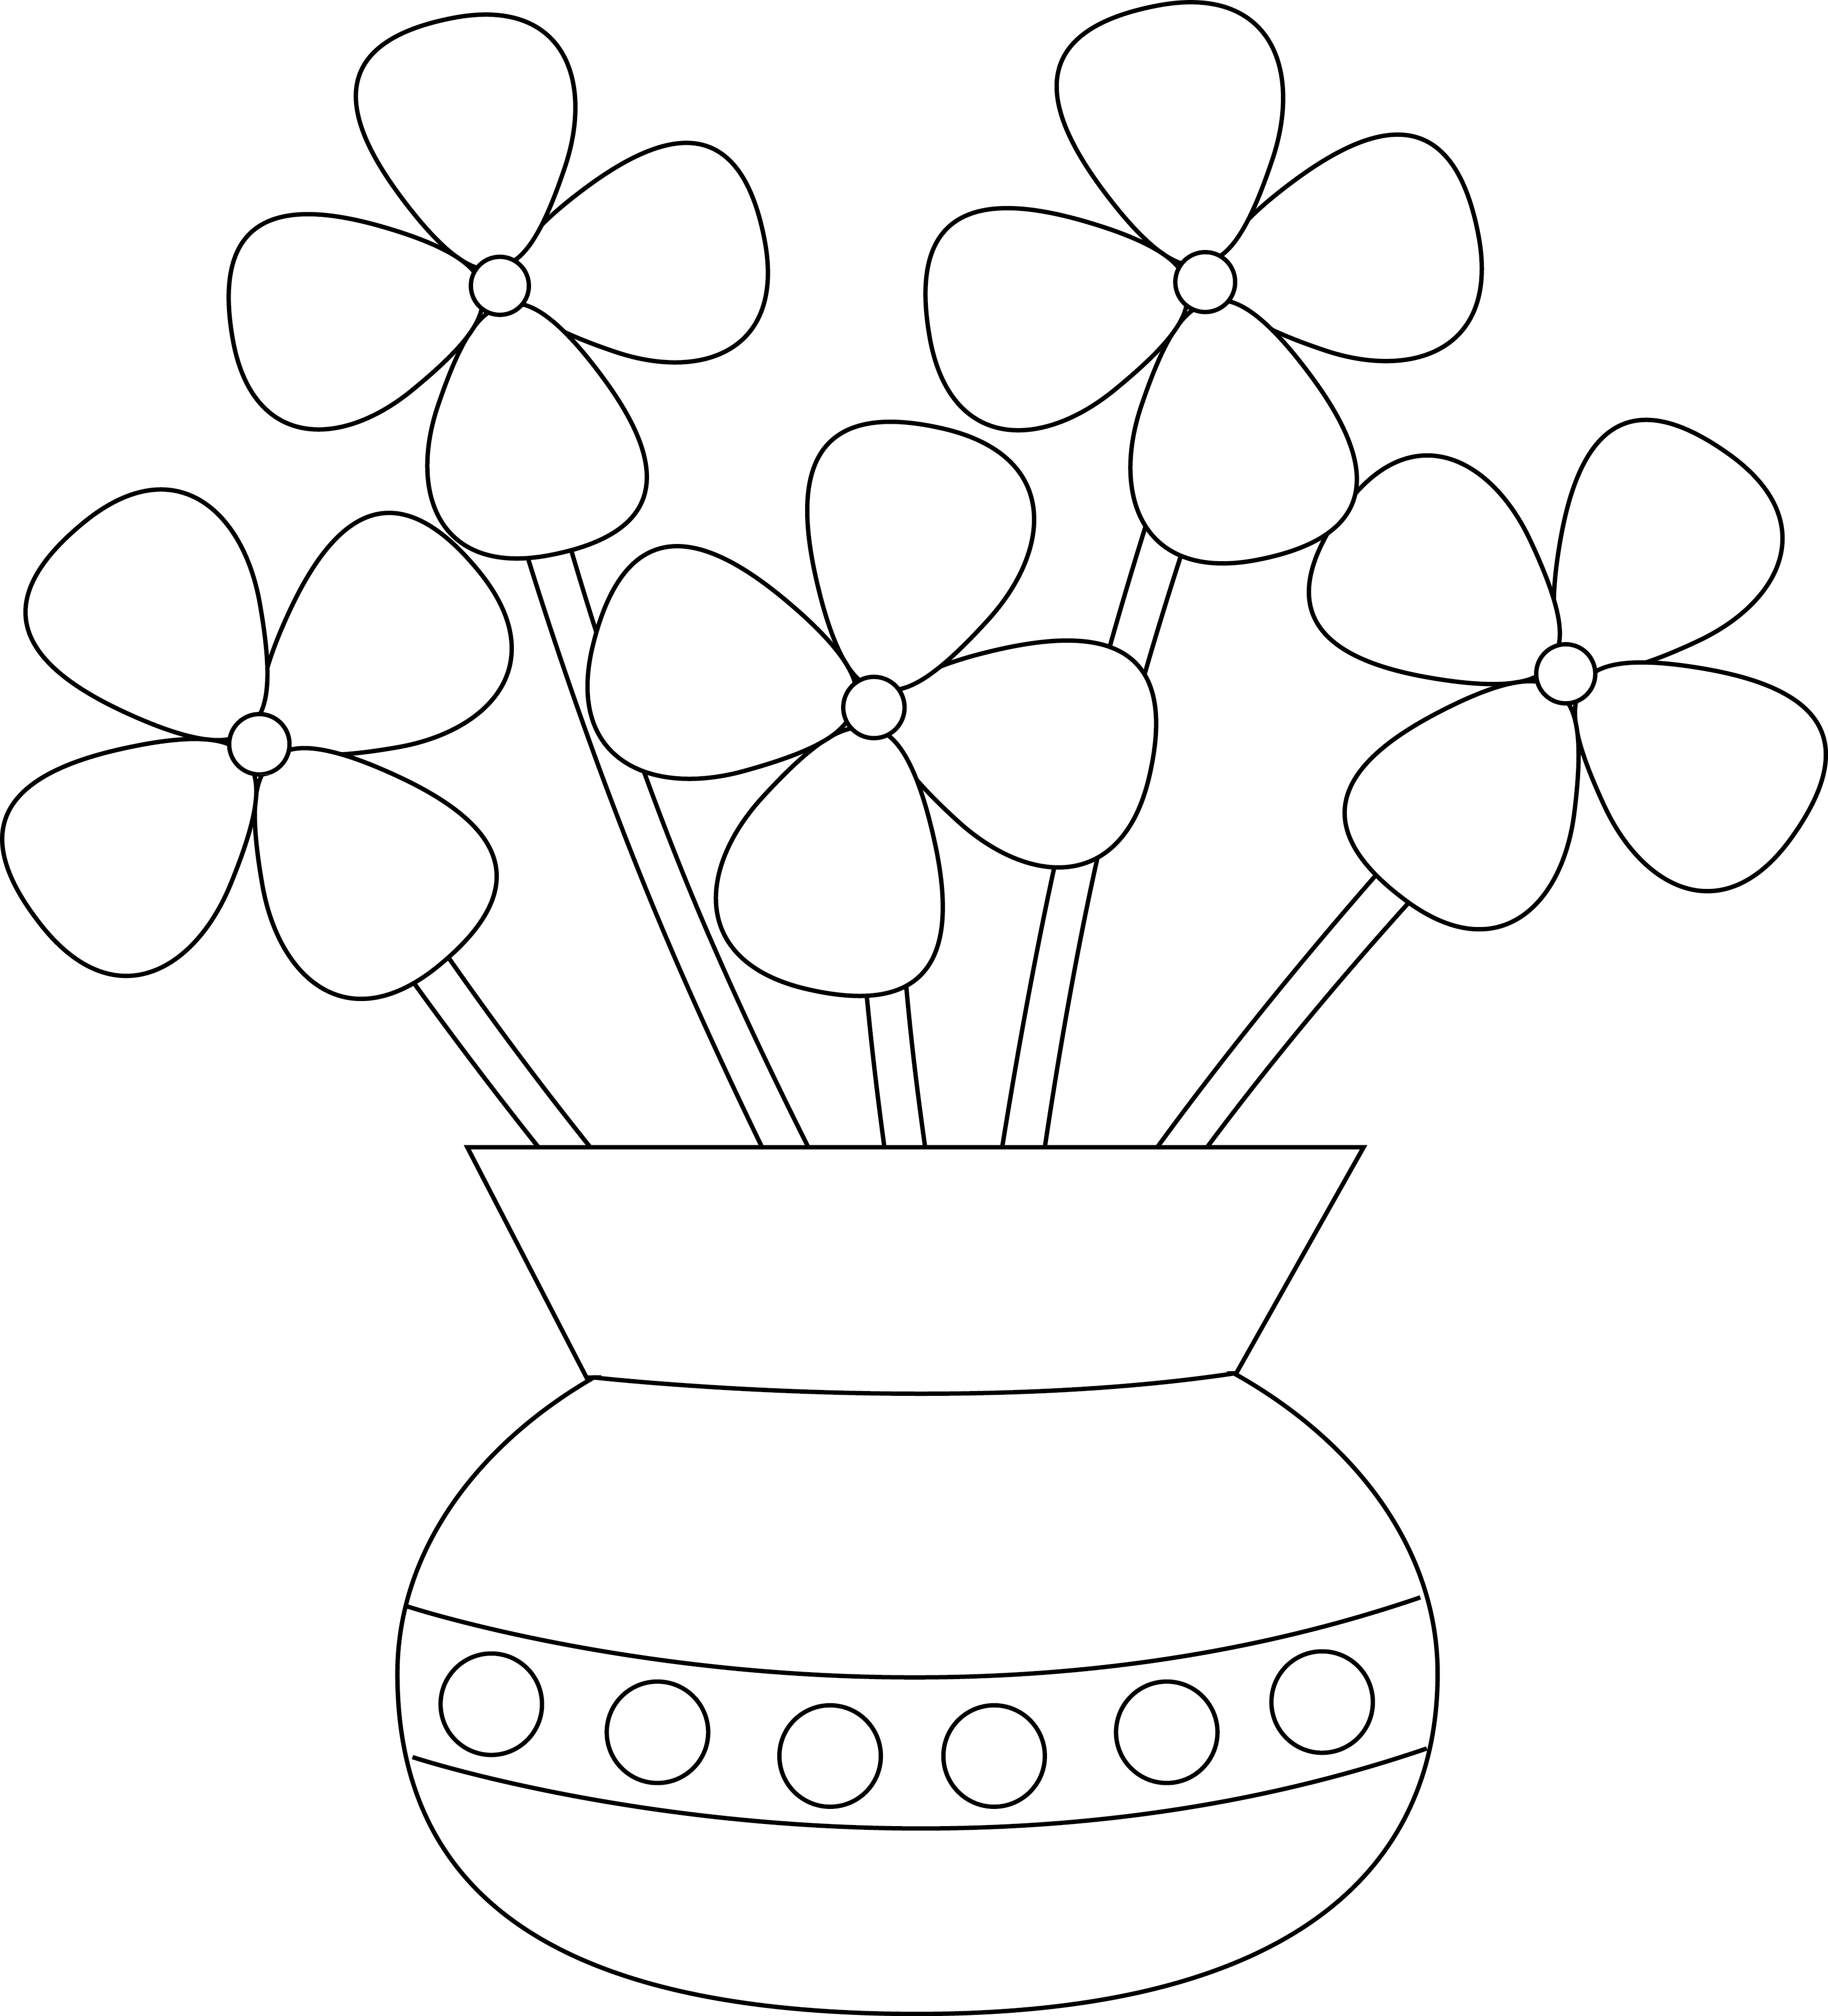 3408x3758 Simple Drawings Of Flowers In A Vase Draw A Flower Vase For Kids